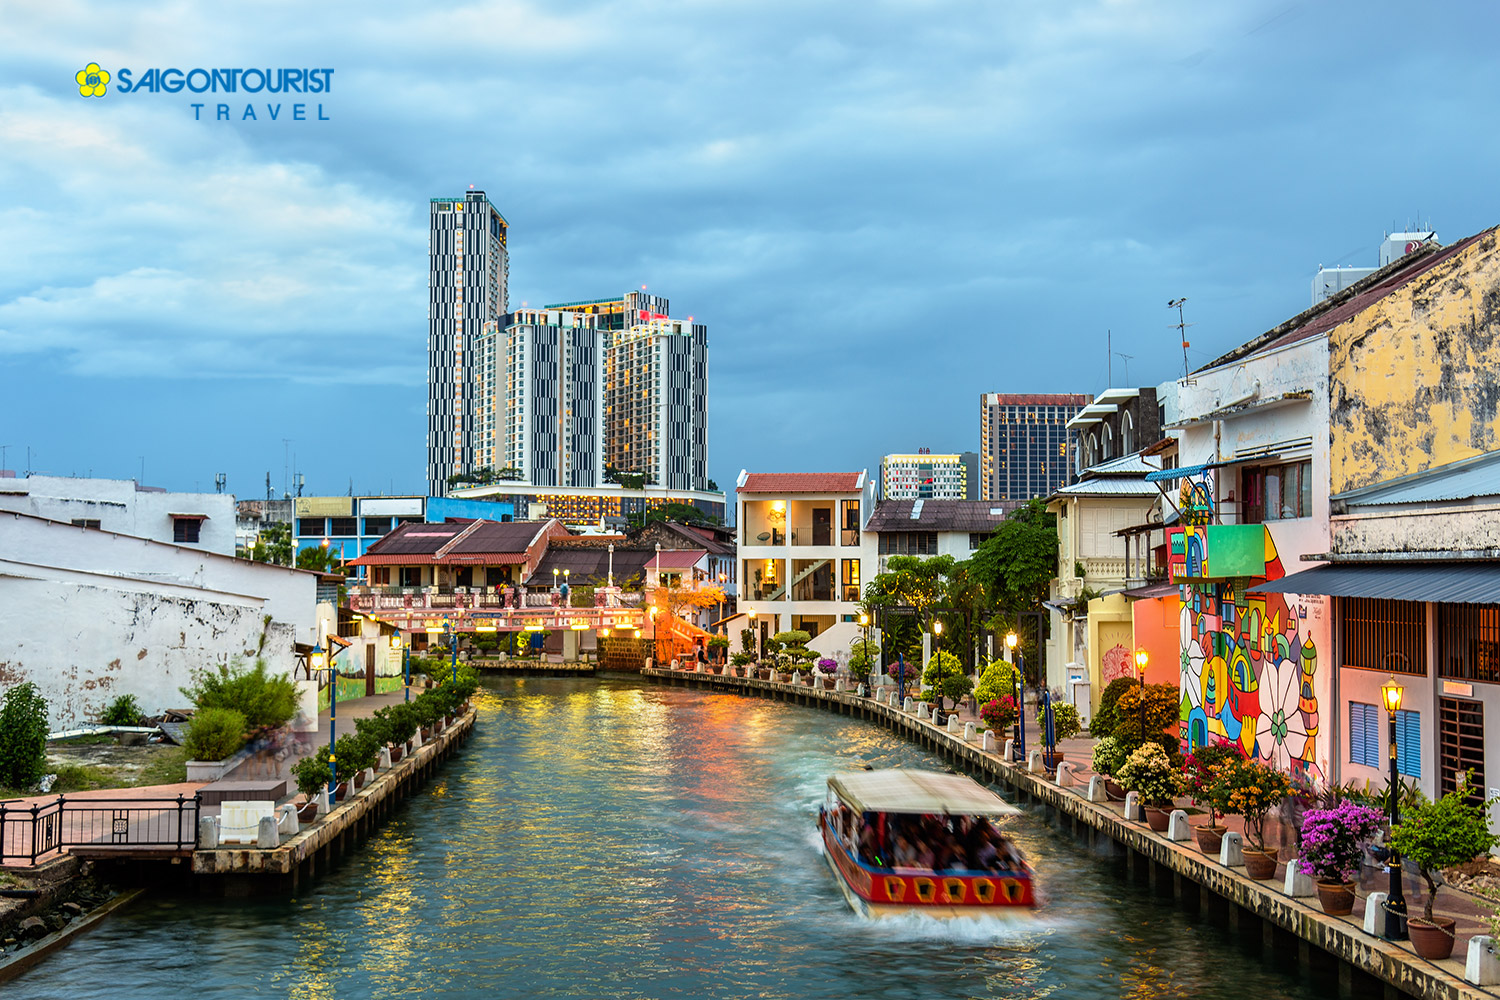 Du Lịch Singapore - Malaysia - Mùng 4 Tết Nguyên Đán 2020 [Garden By the Bay - Flower Dome - Madame Tussauds - Vườn Chim Jurong - Wings Of Time - Genting]